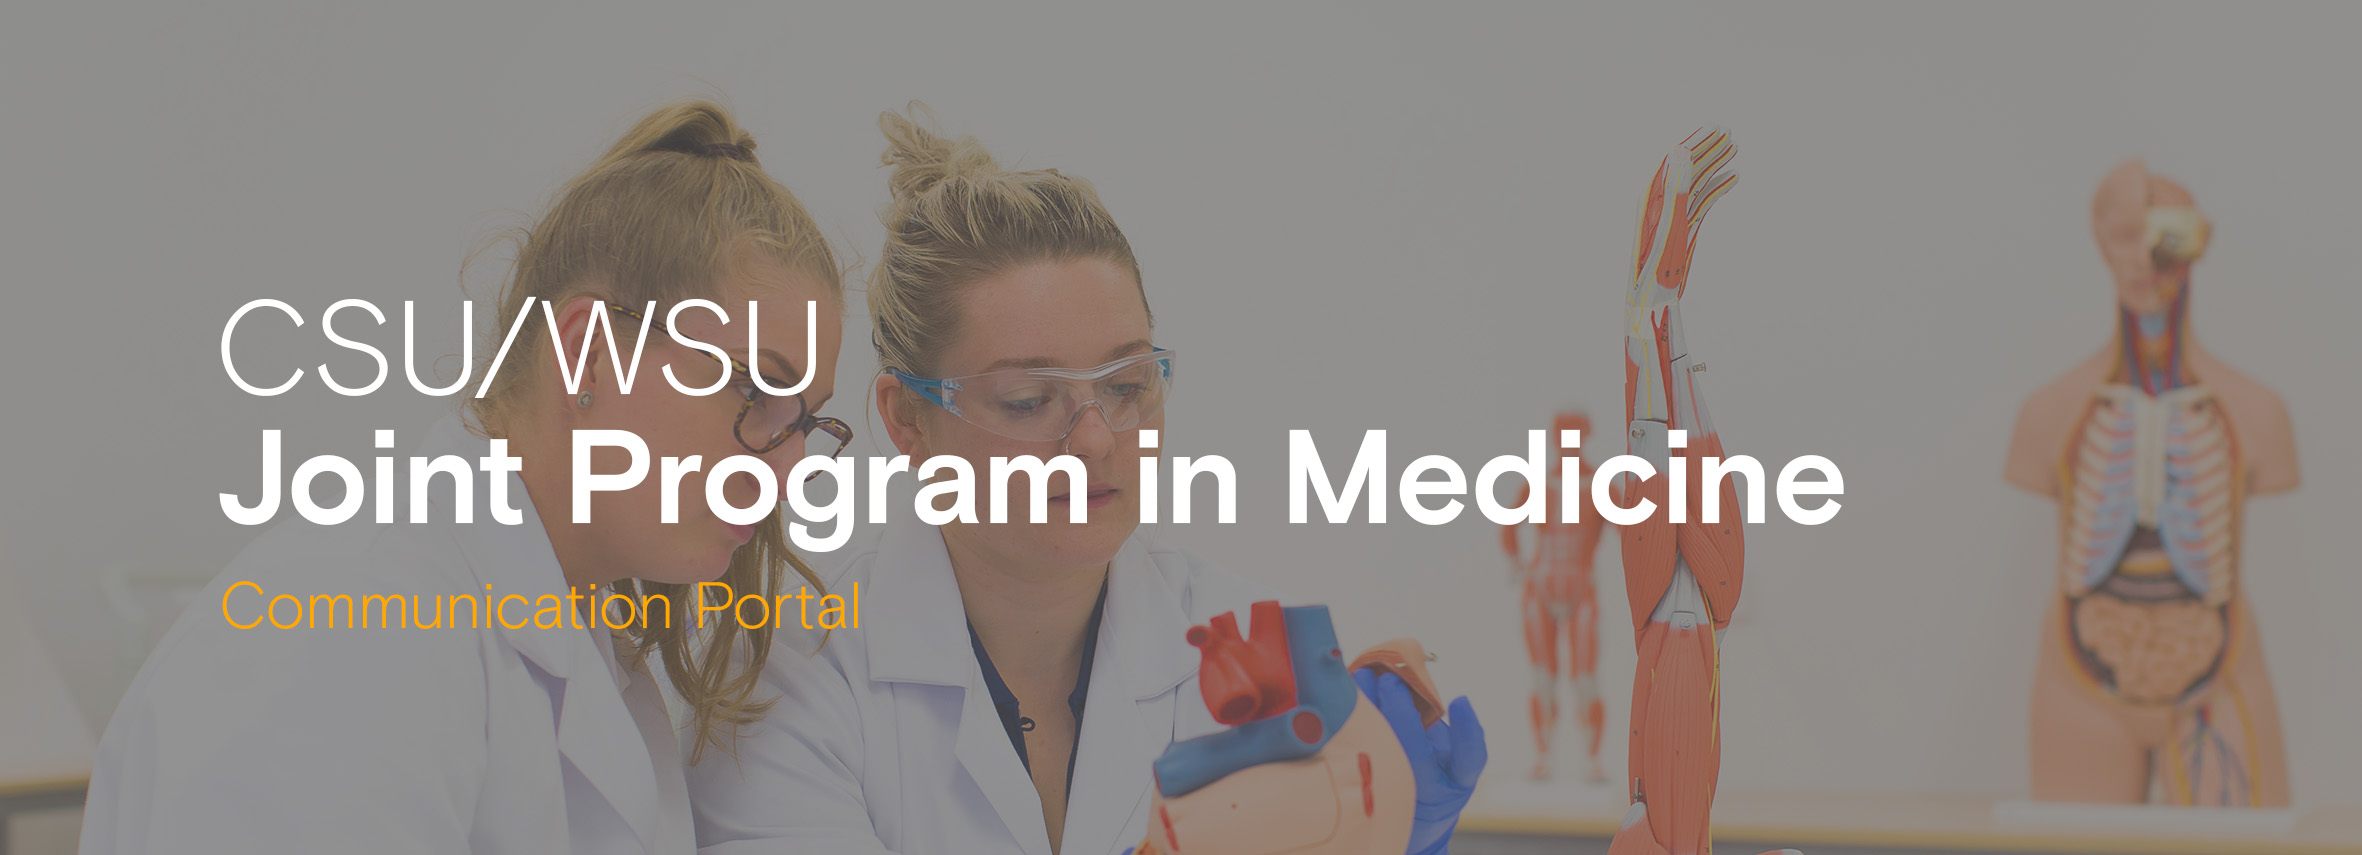 CSUWSU joint program in medicine